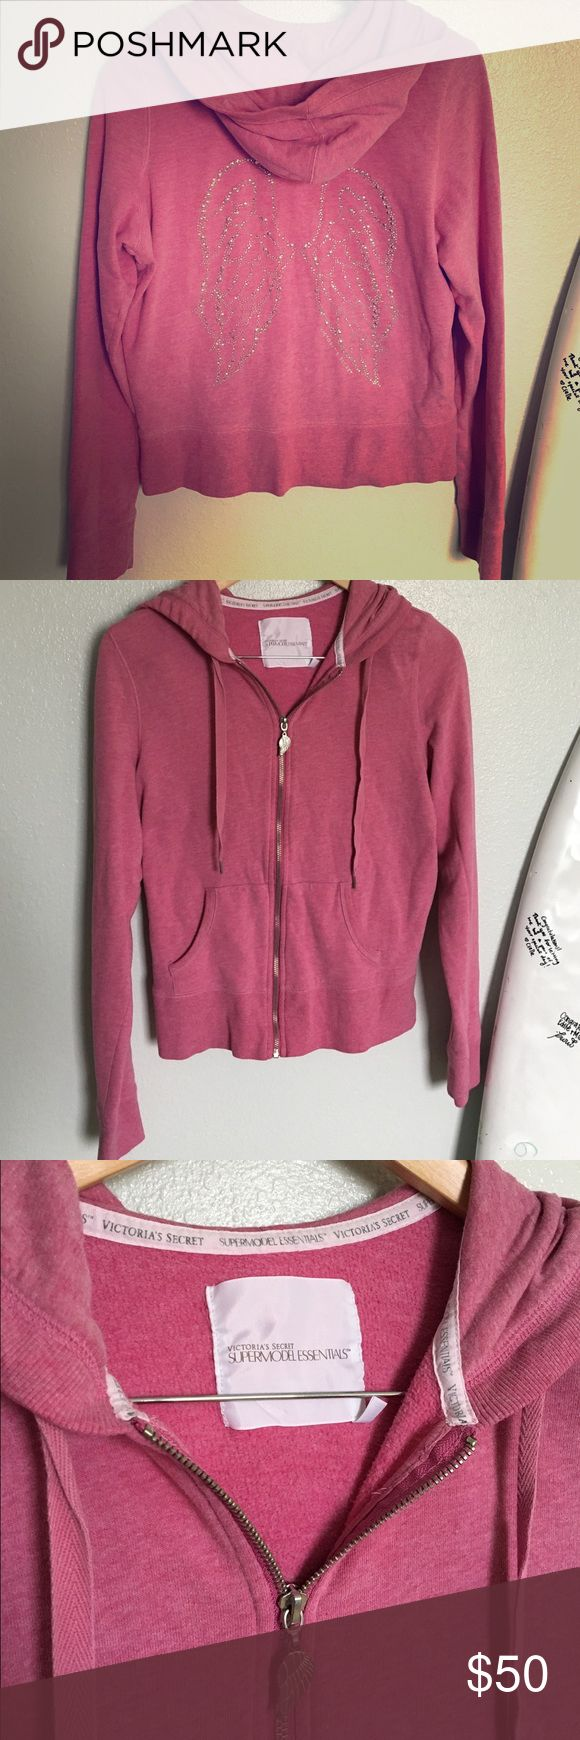 Victoria's Secret wings supermodel essentials pink Size L but fits like a M. Wings on back, pink color Victoria's Secret Sweaters